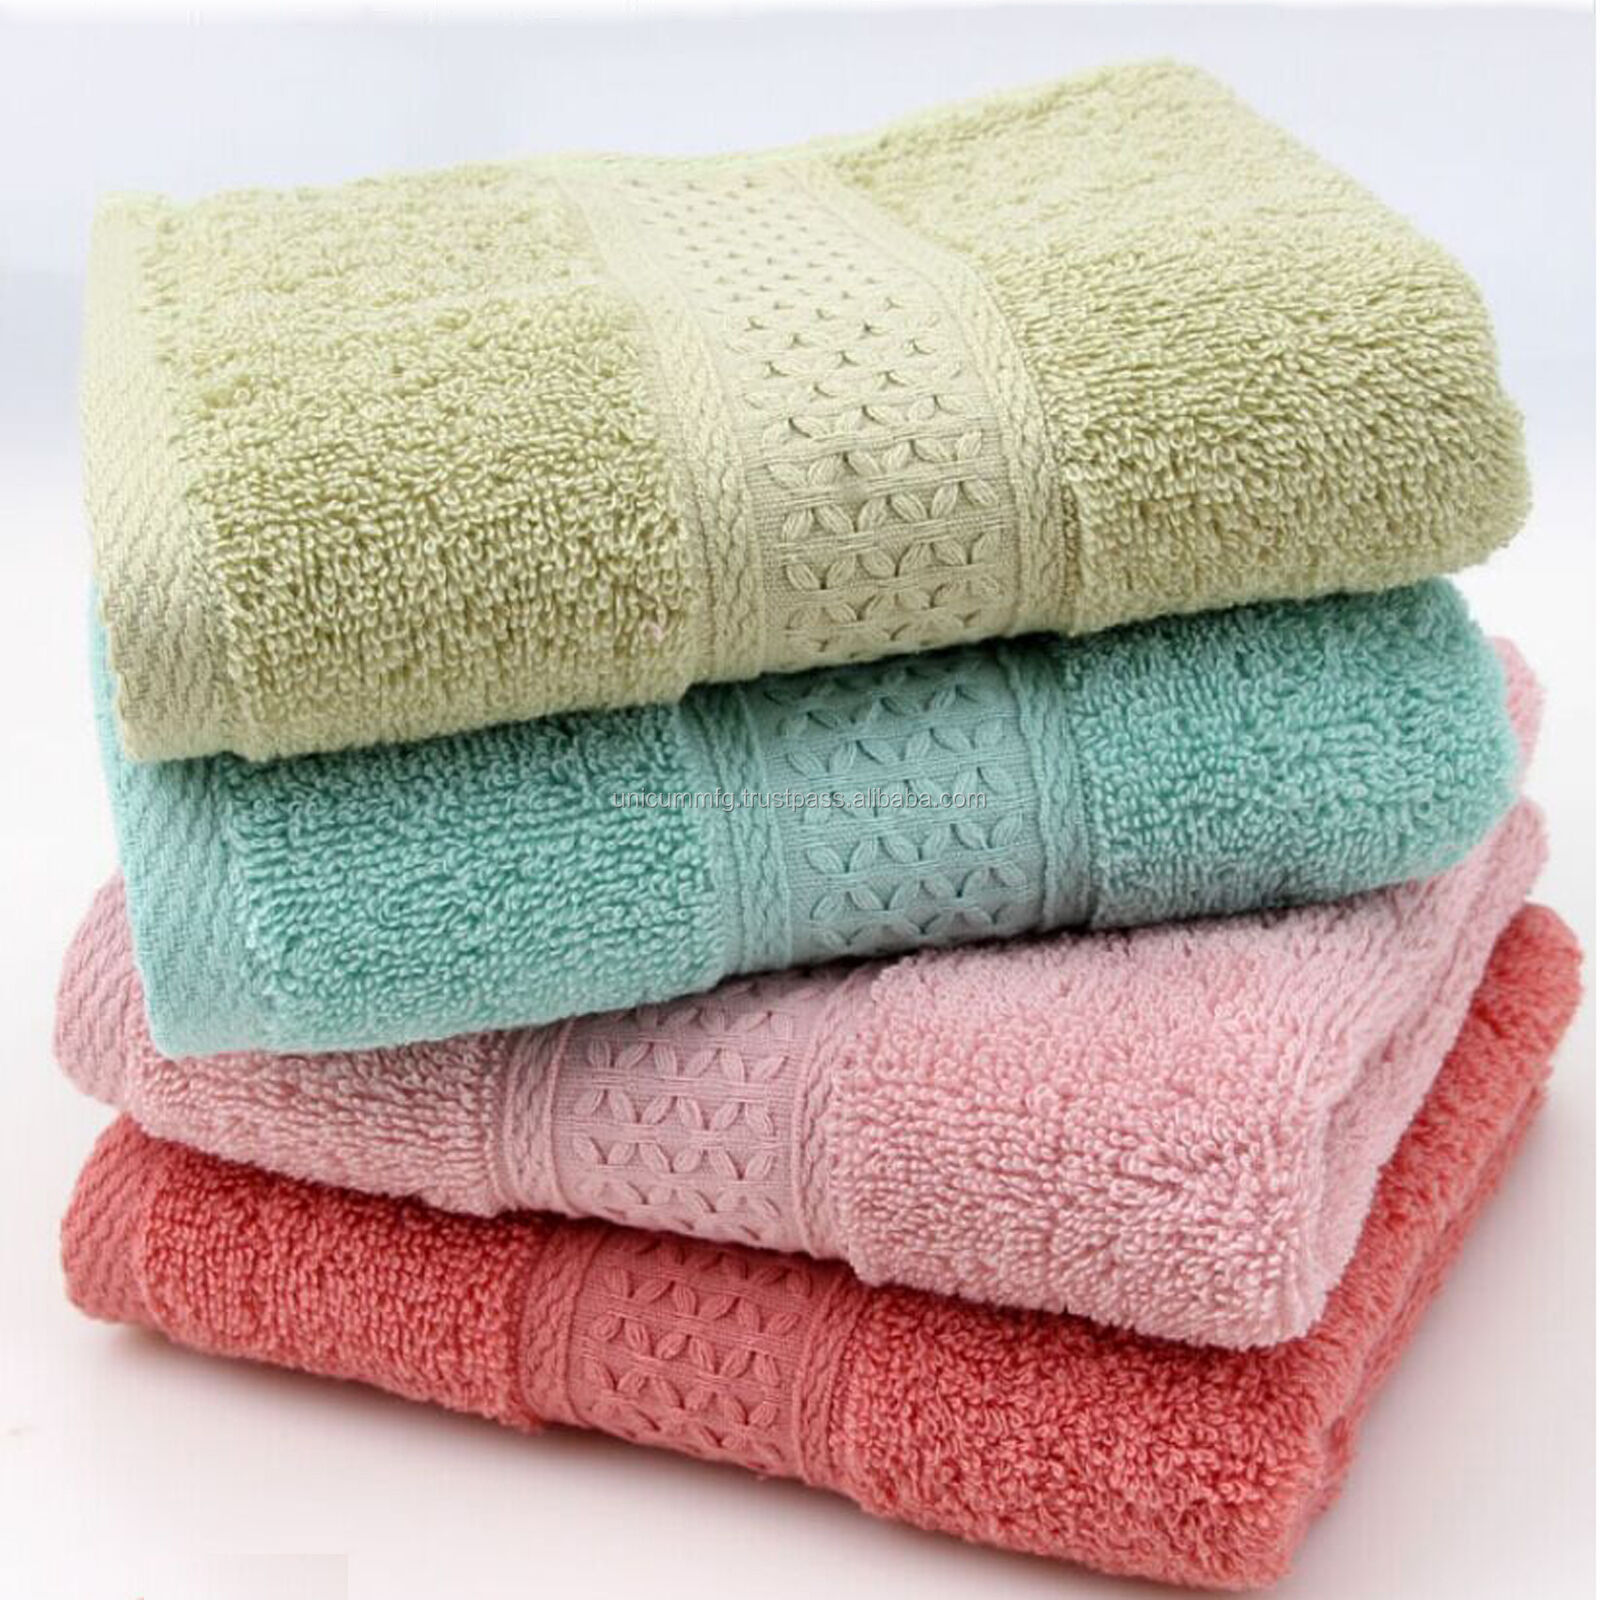 Bath Towels Cotton White 24 x 48 Pool Gym Towels Wholesale Lot Utopia Towels